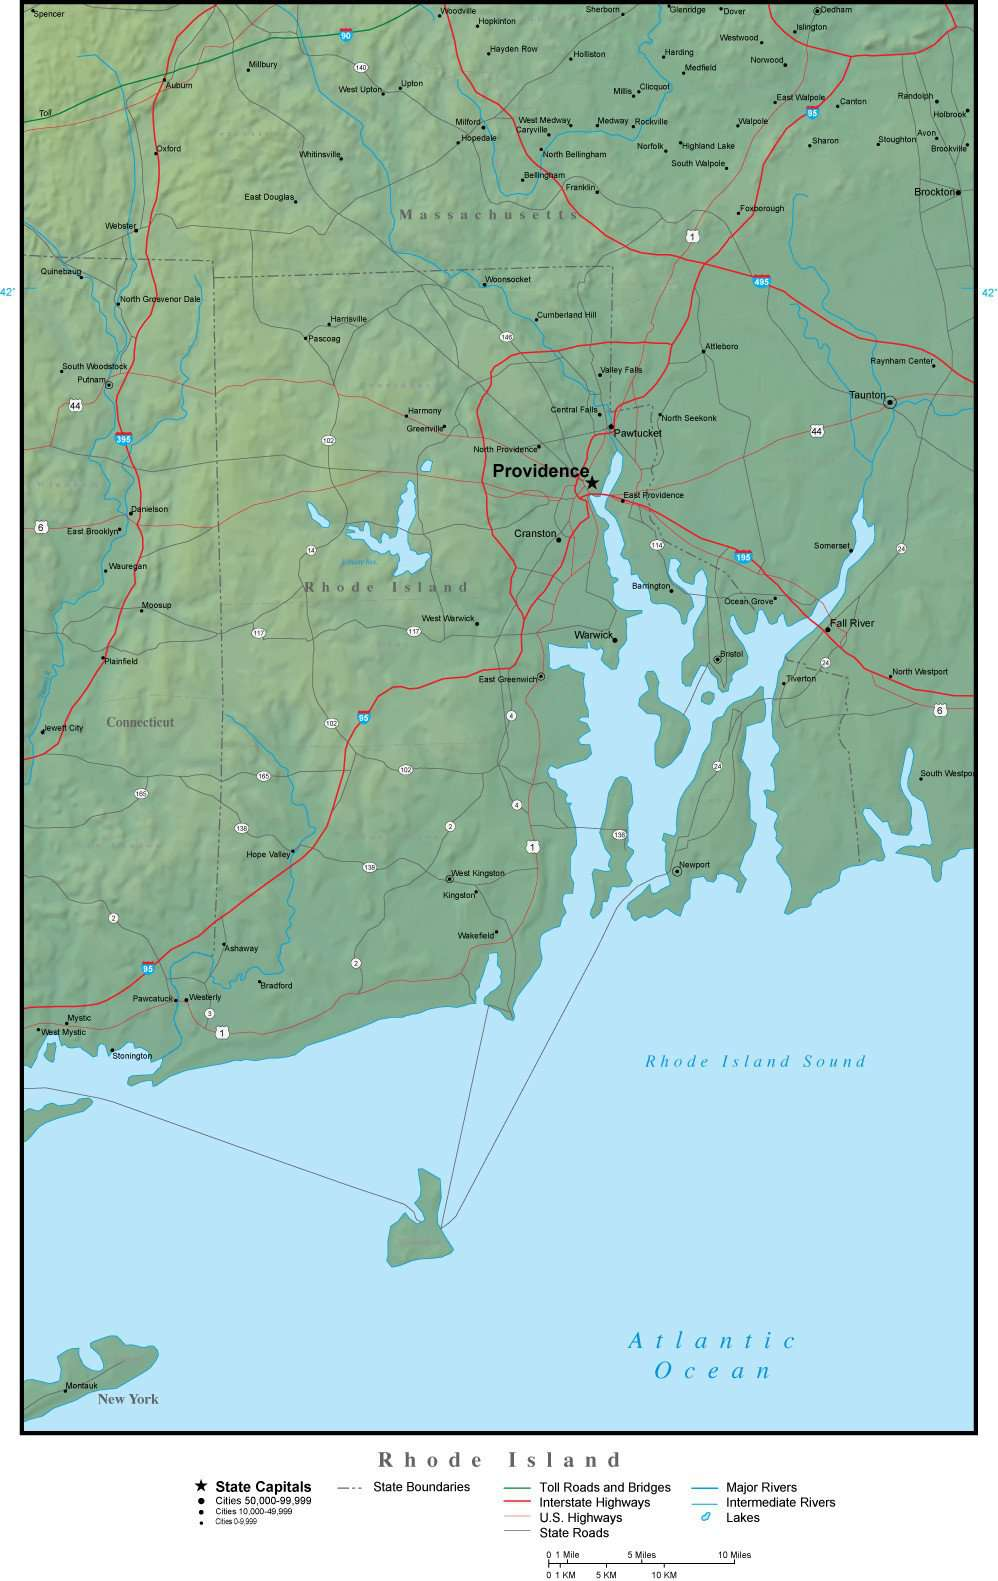 Rhode Island State Map Plus Terrain with Cities & Roads – Map Resources